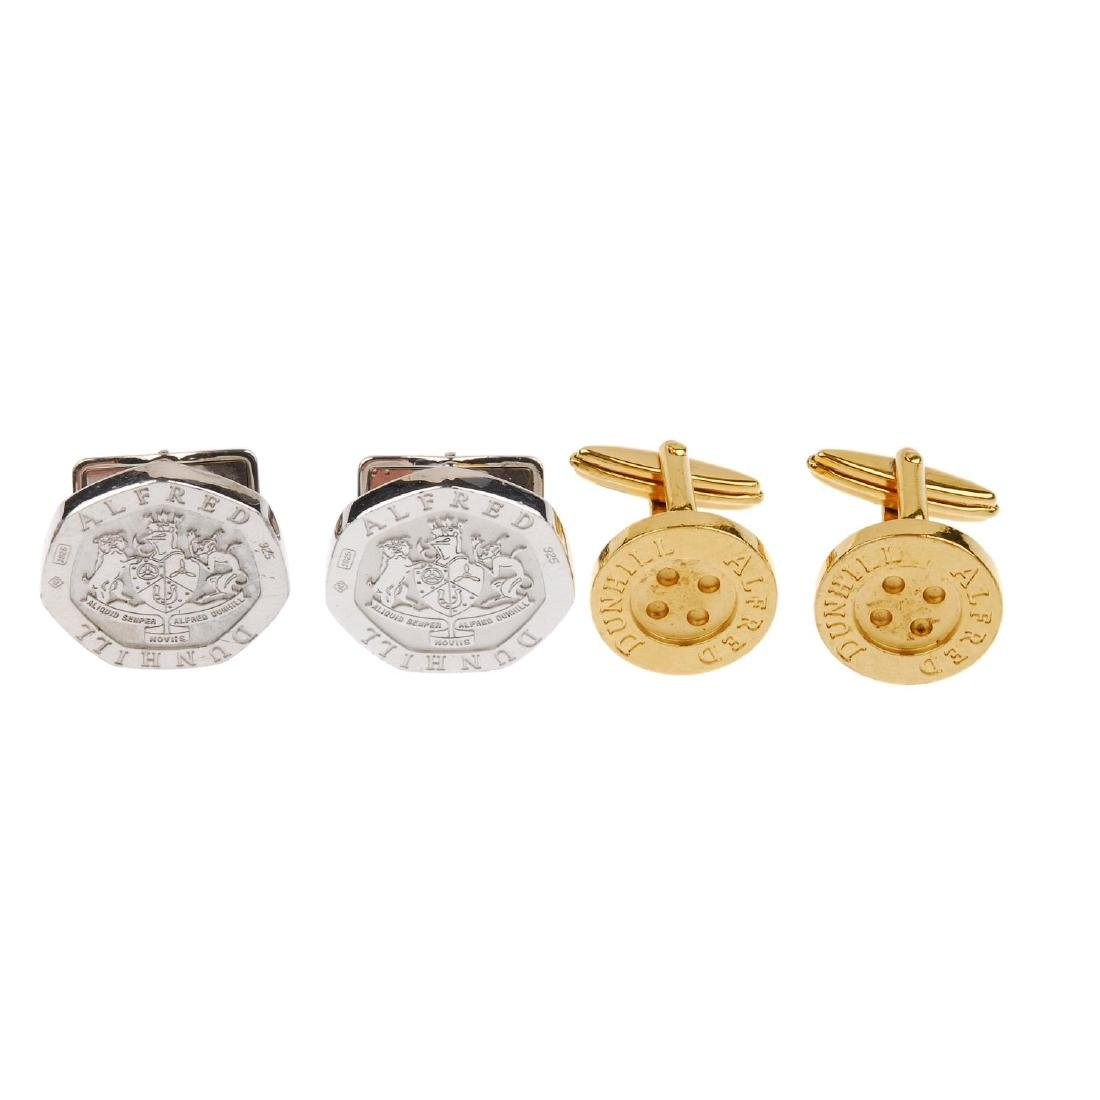 ALFRED DUNHILL - two pairs of cufflinks. The first of